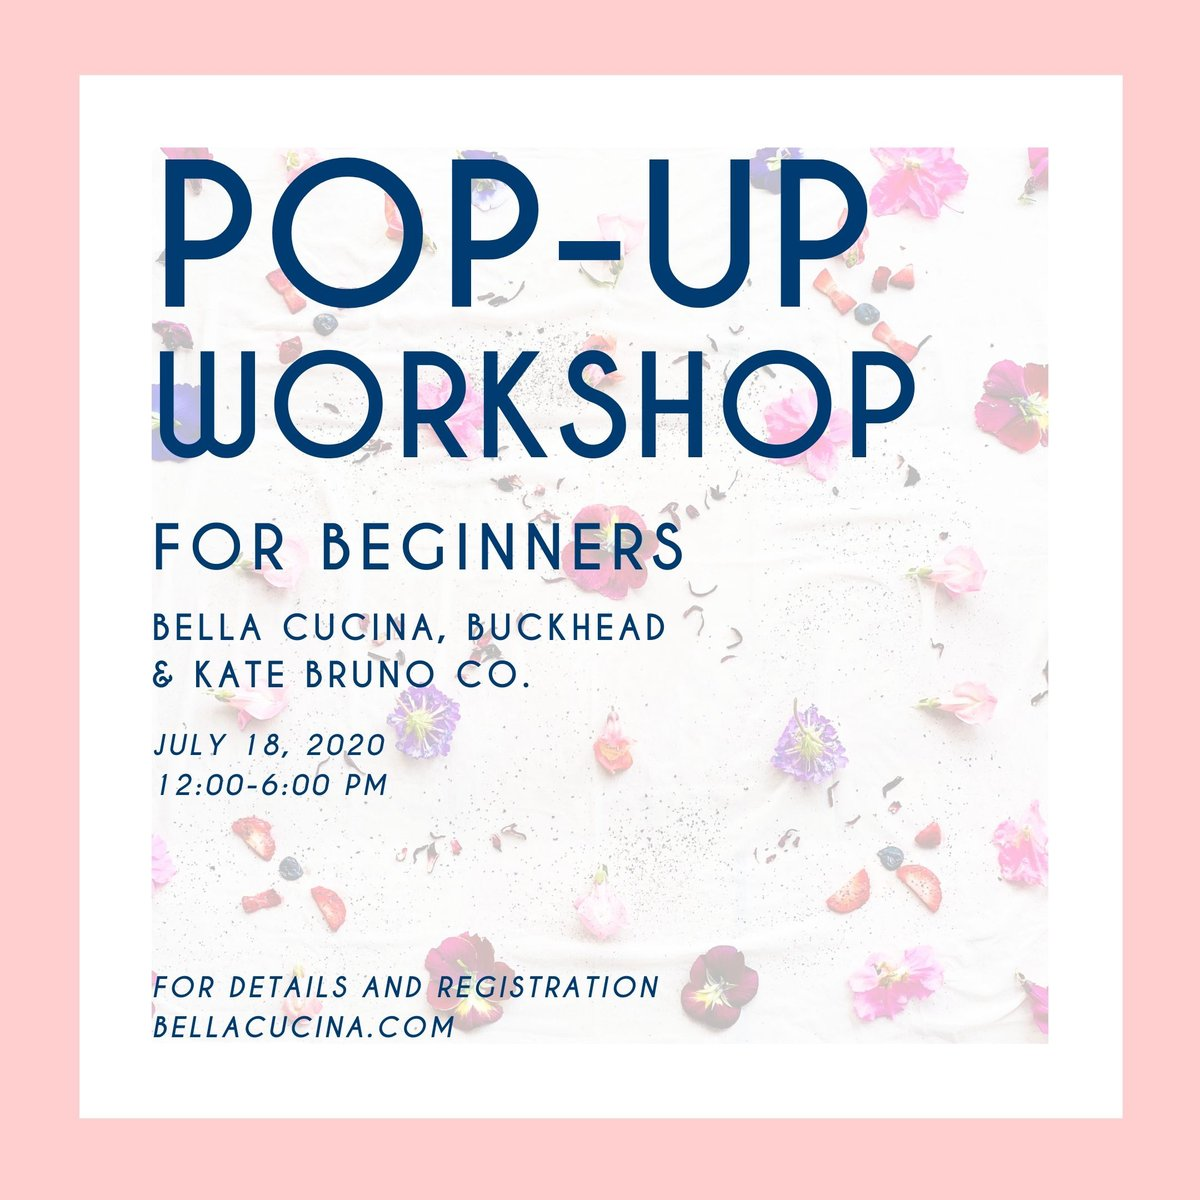 I am thrilled to be participating in the pop-up shop and holding workshops @shopbellacucina this  weekend and hope to see you there. #katebrunoco #naturalbundledye #handmadescarves #ecofashion #ethicalfashion #ecochic #makersgonnamake  #doitfortheprocess #ejcollectivecreativepic.twitter.com/uVsicJQMkk